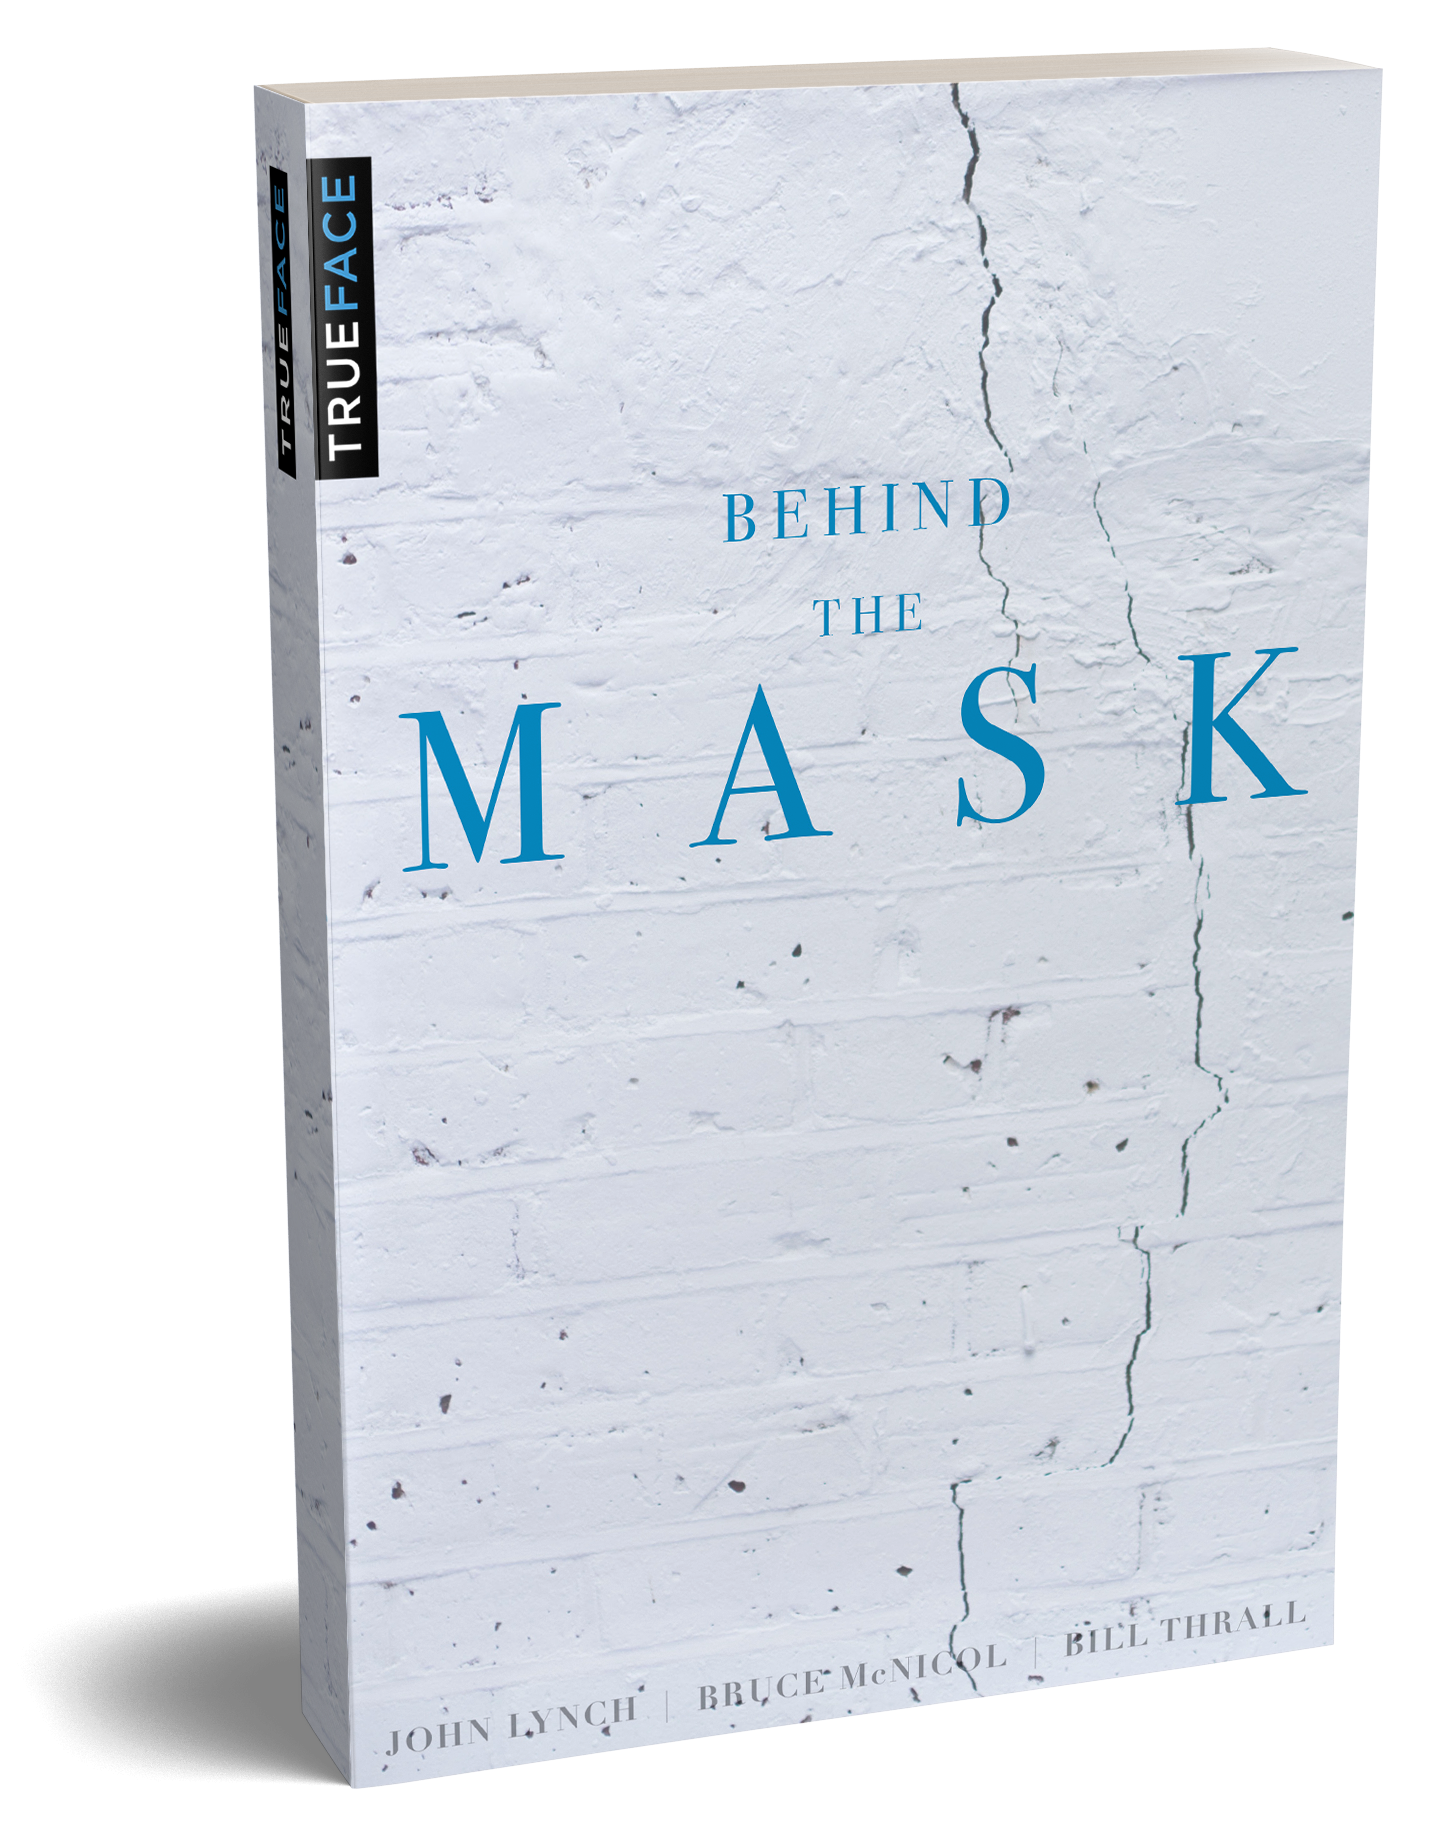 Behind the Mask   The Truths in  Behind the Mask  point to the origins of our unresolved life issues, which hinder us from enjoying substantial healing, maturing, and influence.